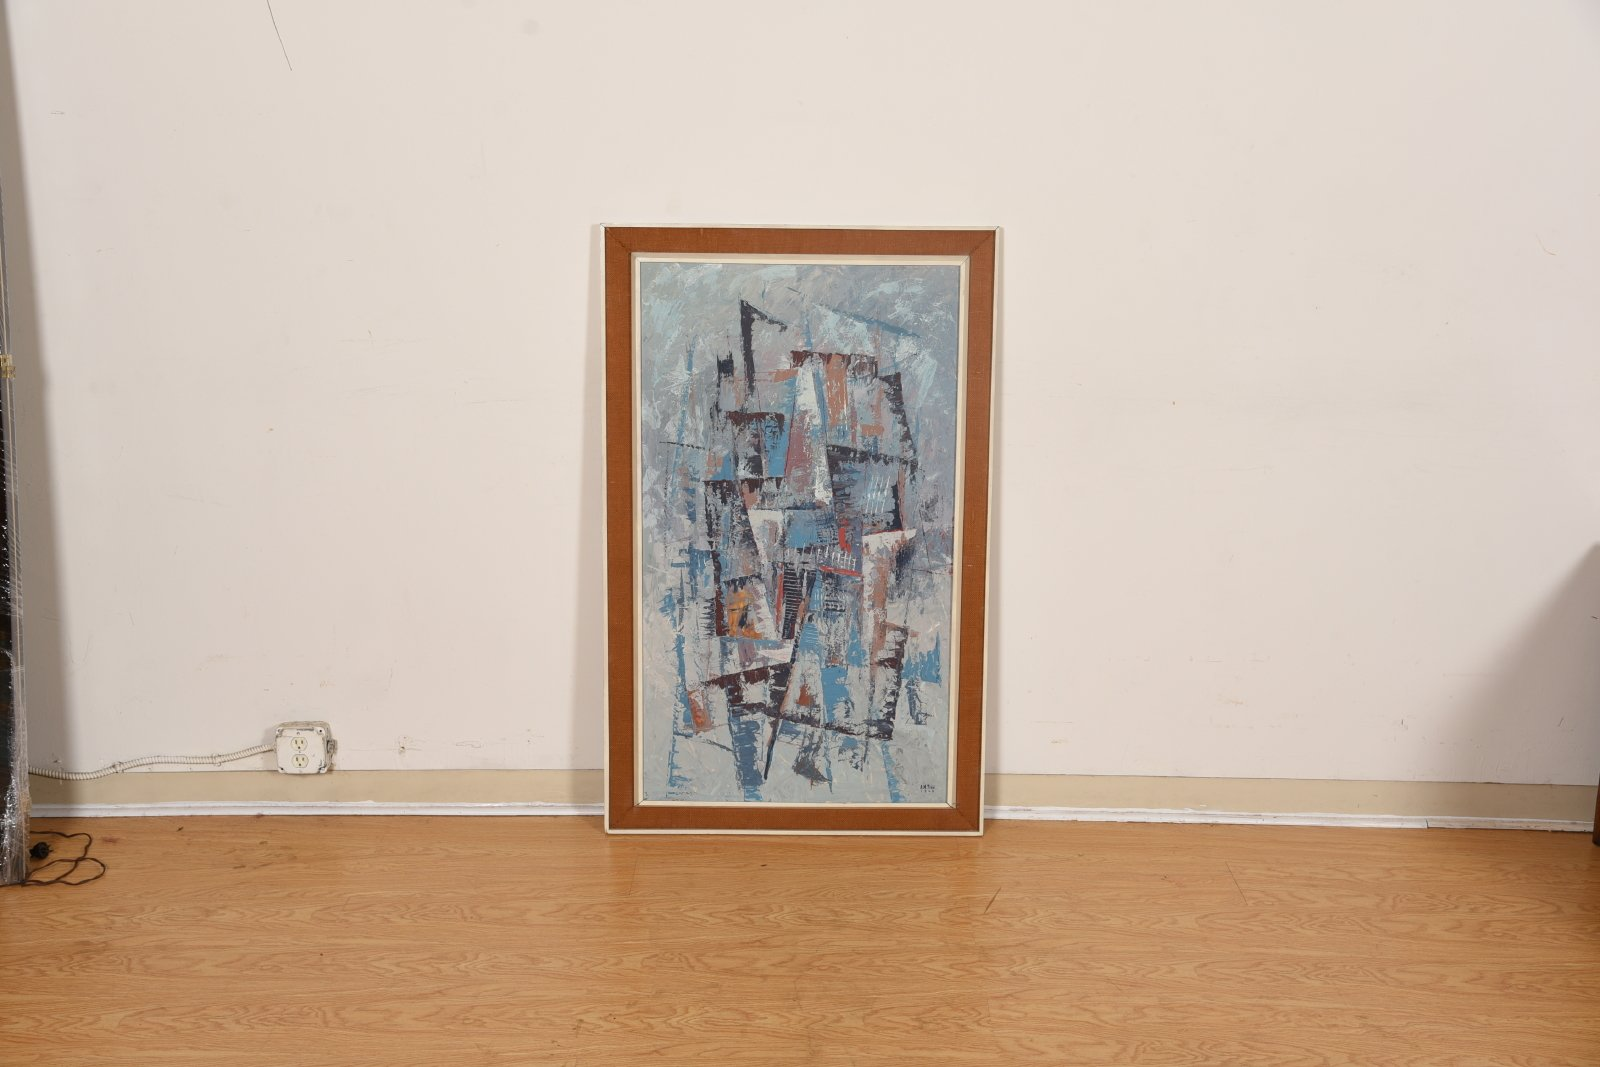 Large Abstract Expressionist Painting in Blues and Browns, Signed & Dated 1964